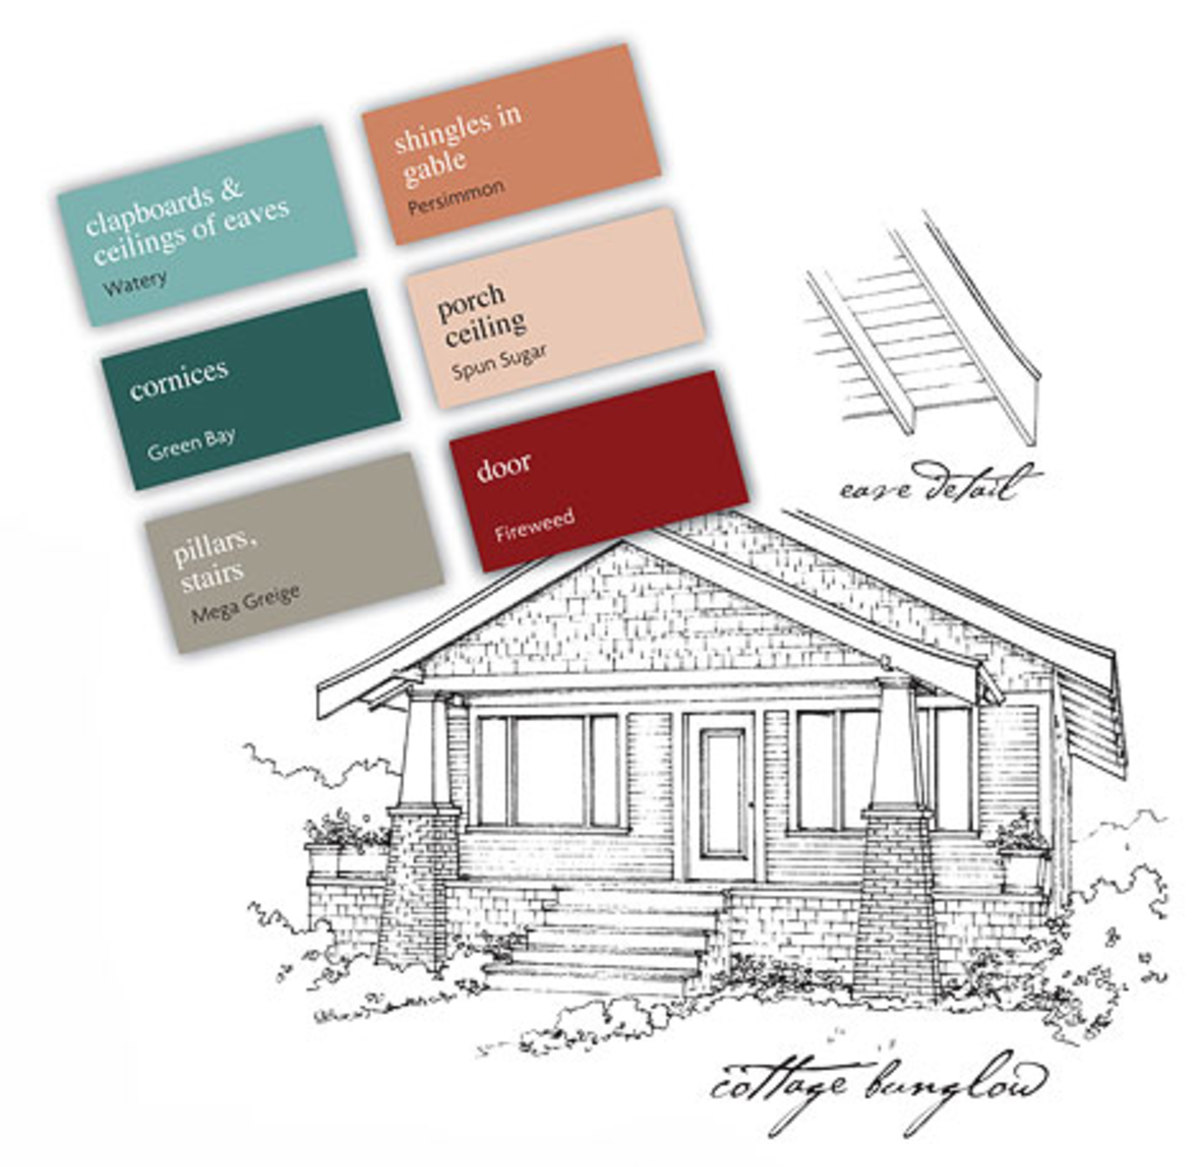 Cottage Bungalow, historical color schemes